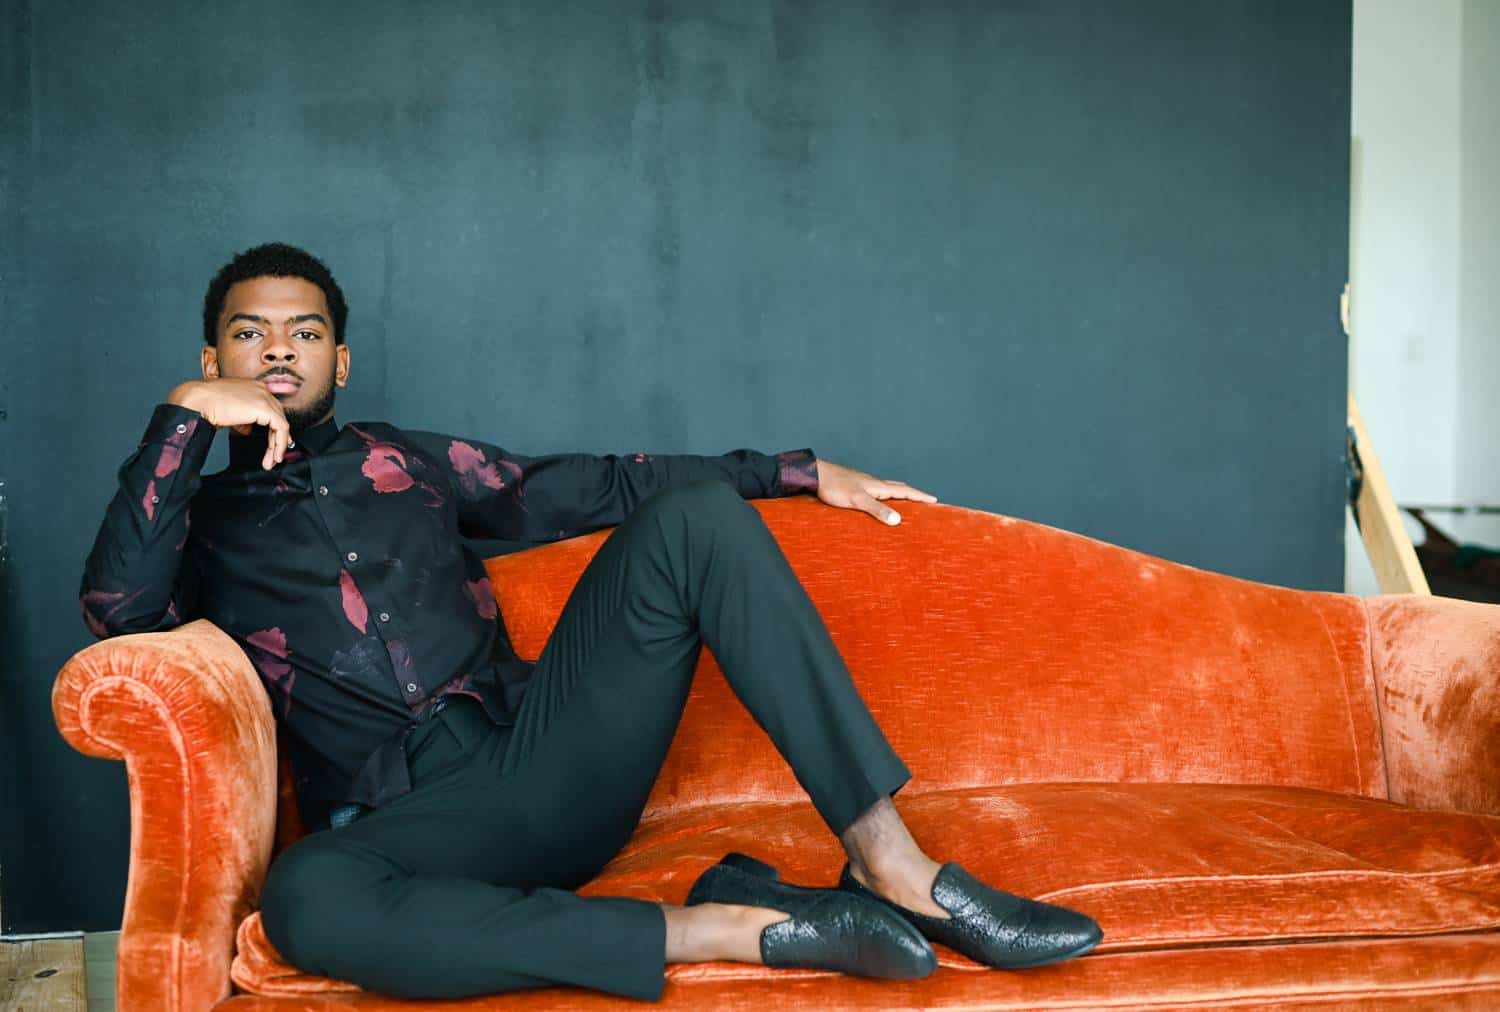 A dapper Black gentleman in black pants, a floral shirt, and alligator shoes sits casually on an orange velvet sofa with his feet propped up beside him. The photo is taken in a studio against a deep gray backdrop, and the man's rests his elbow on the sofa's arm so he can rest his chin in his hand.